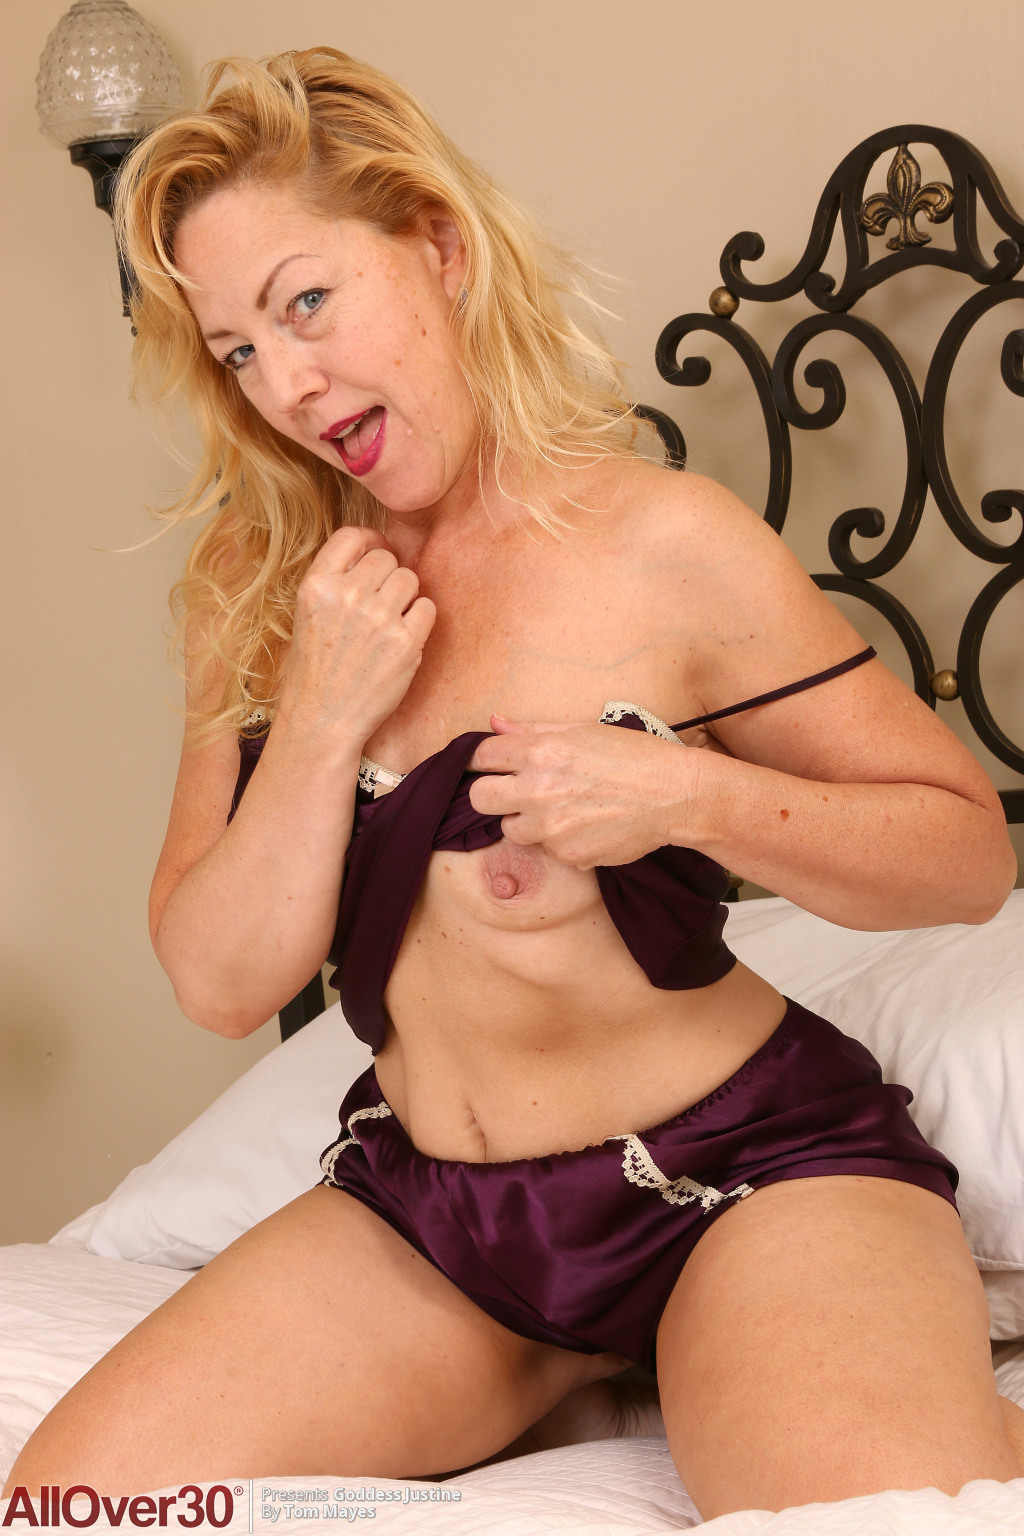 53 year old granny fucks her old pussy with a dildo - 2 3